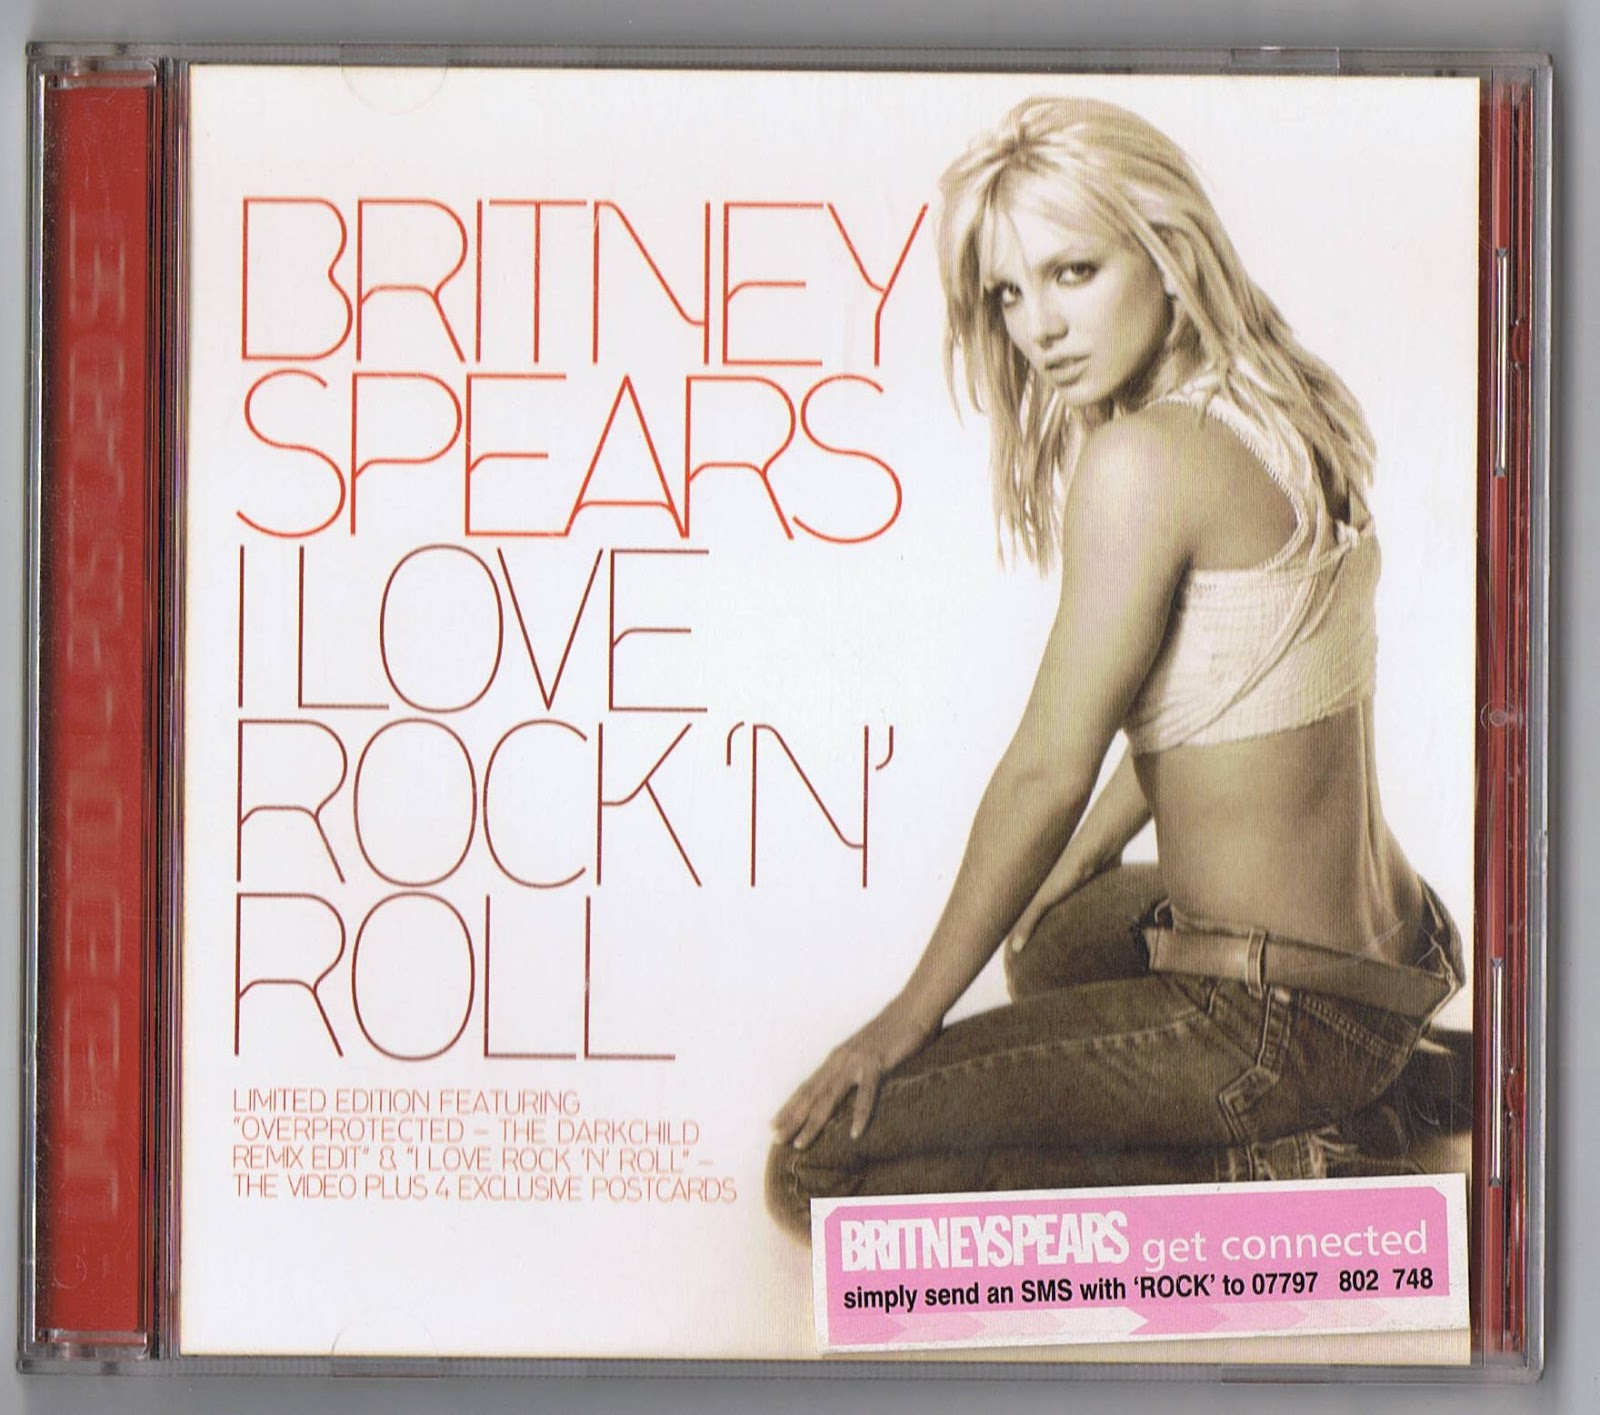 Britney Spears Collection: I Love Rock 'N' Roll [UK Limited